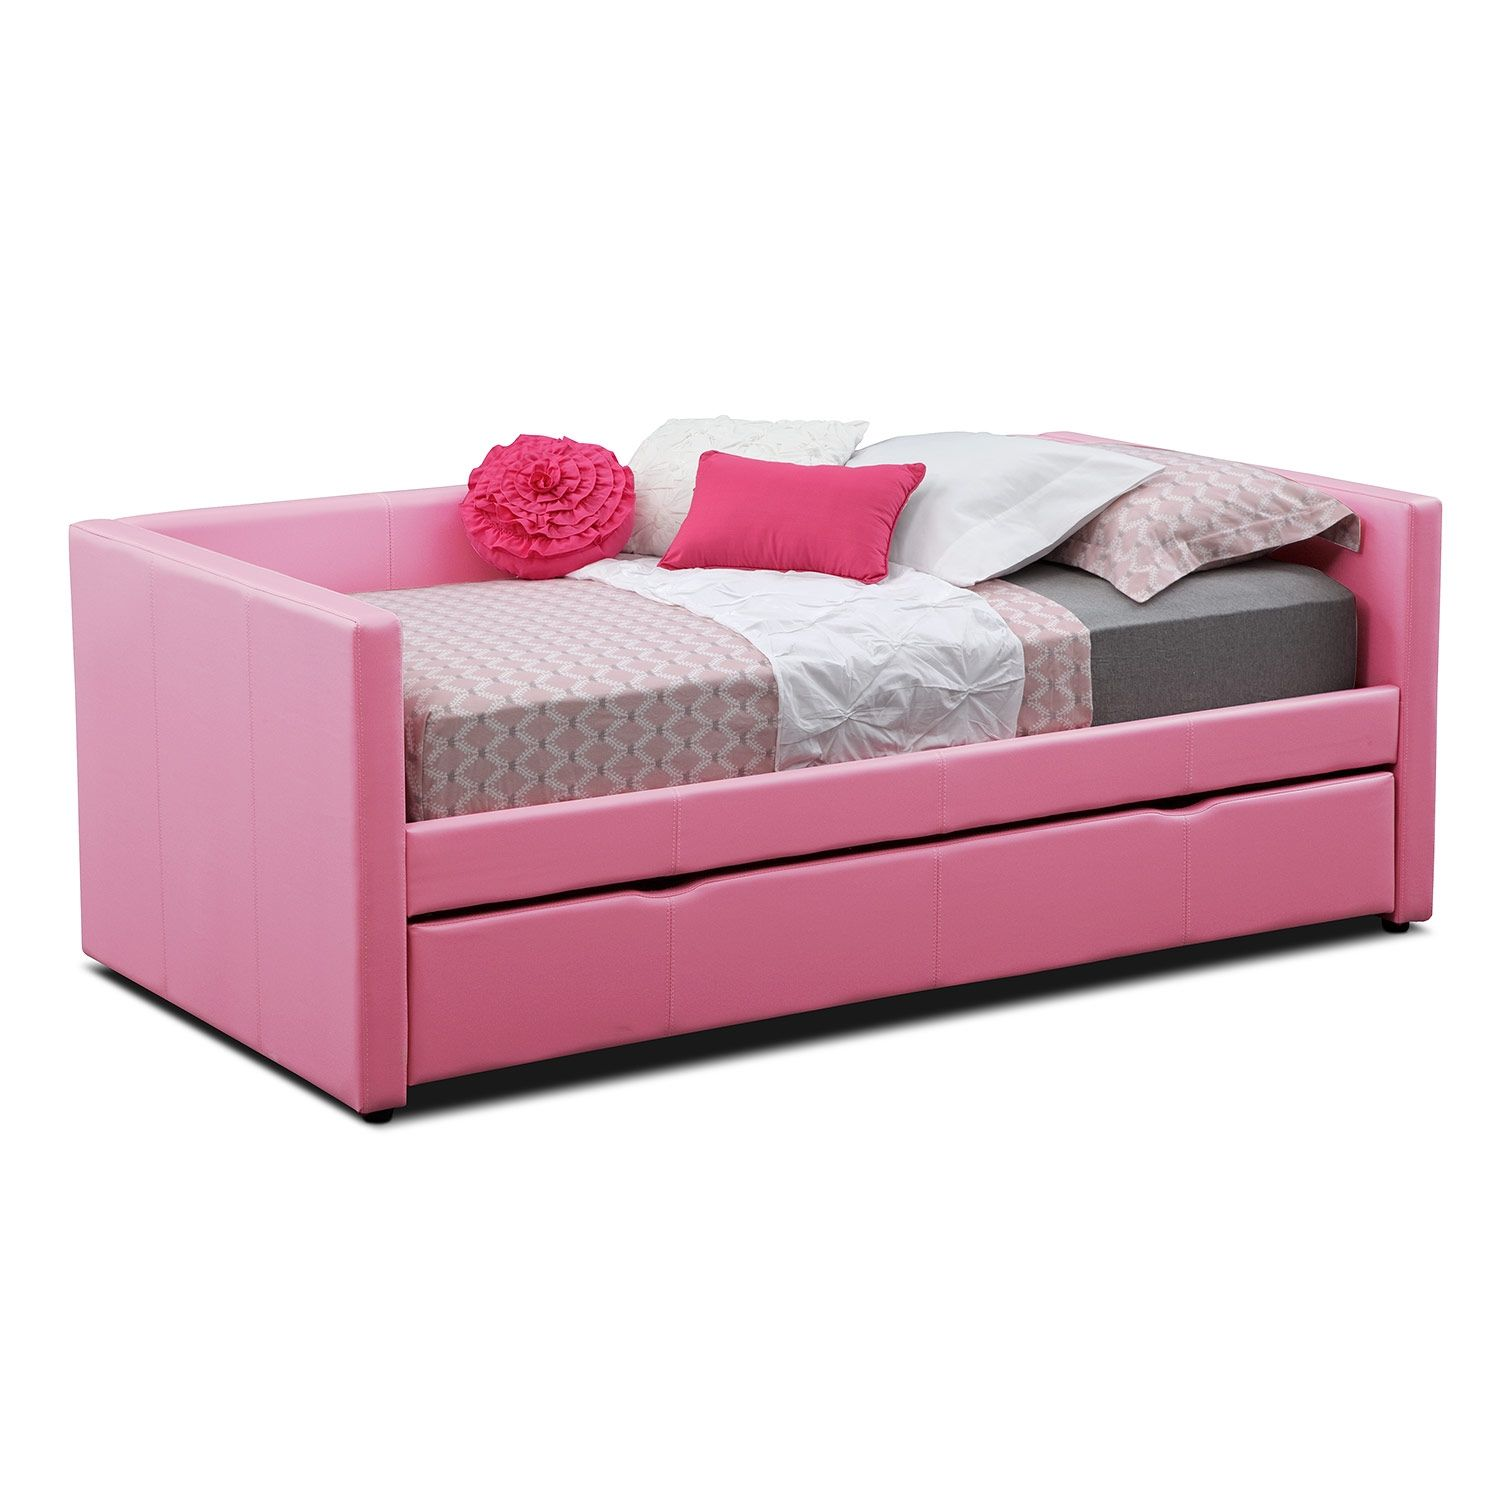 Day Bed Trundle Bed Pink Twin Daybeds With Trundle It Is Very Charming